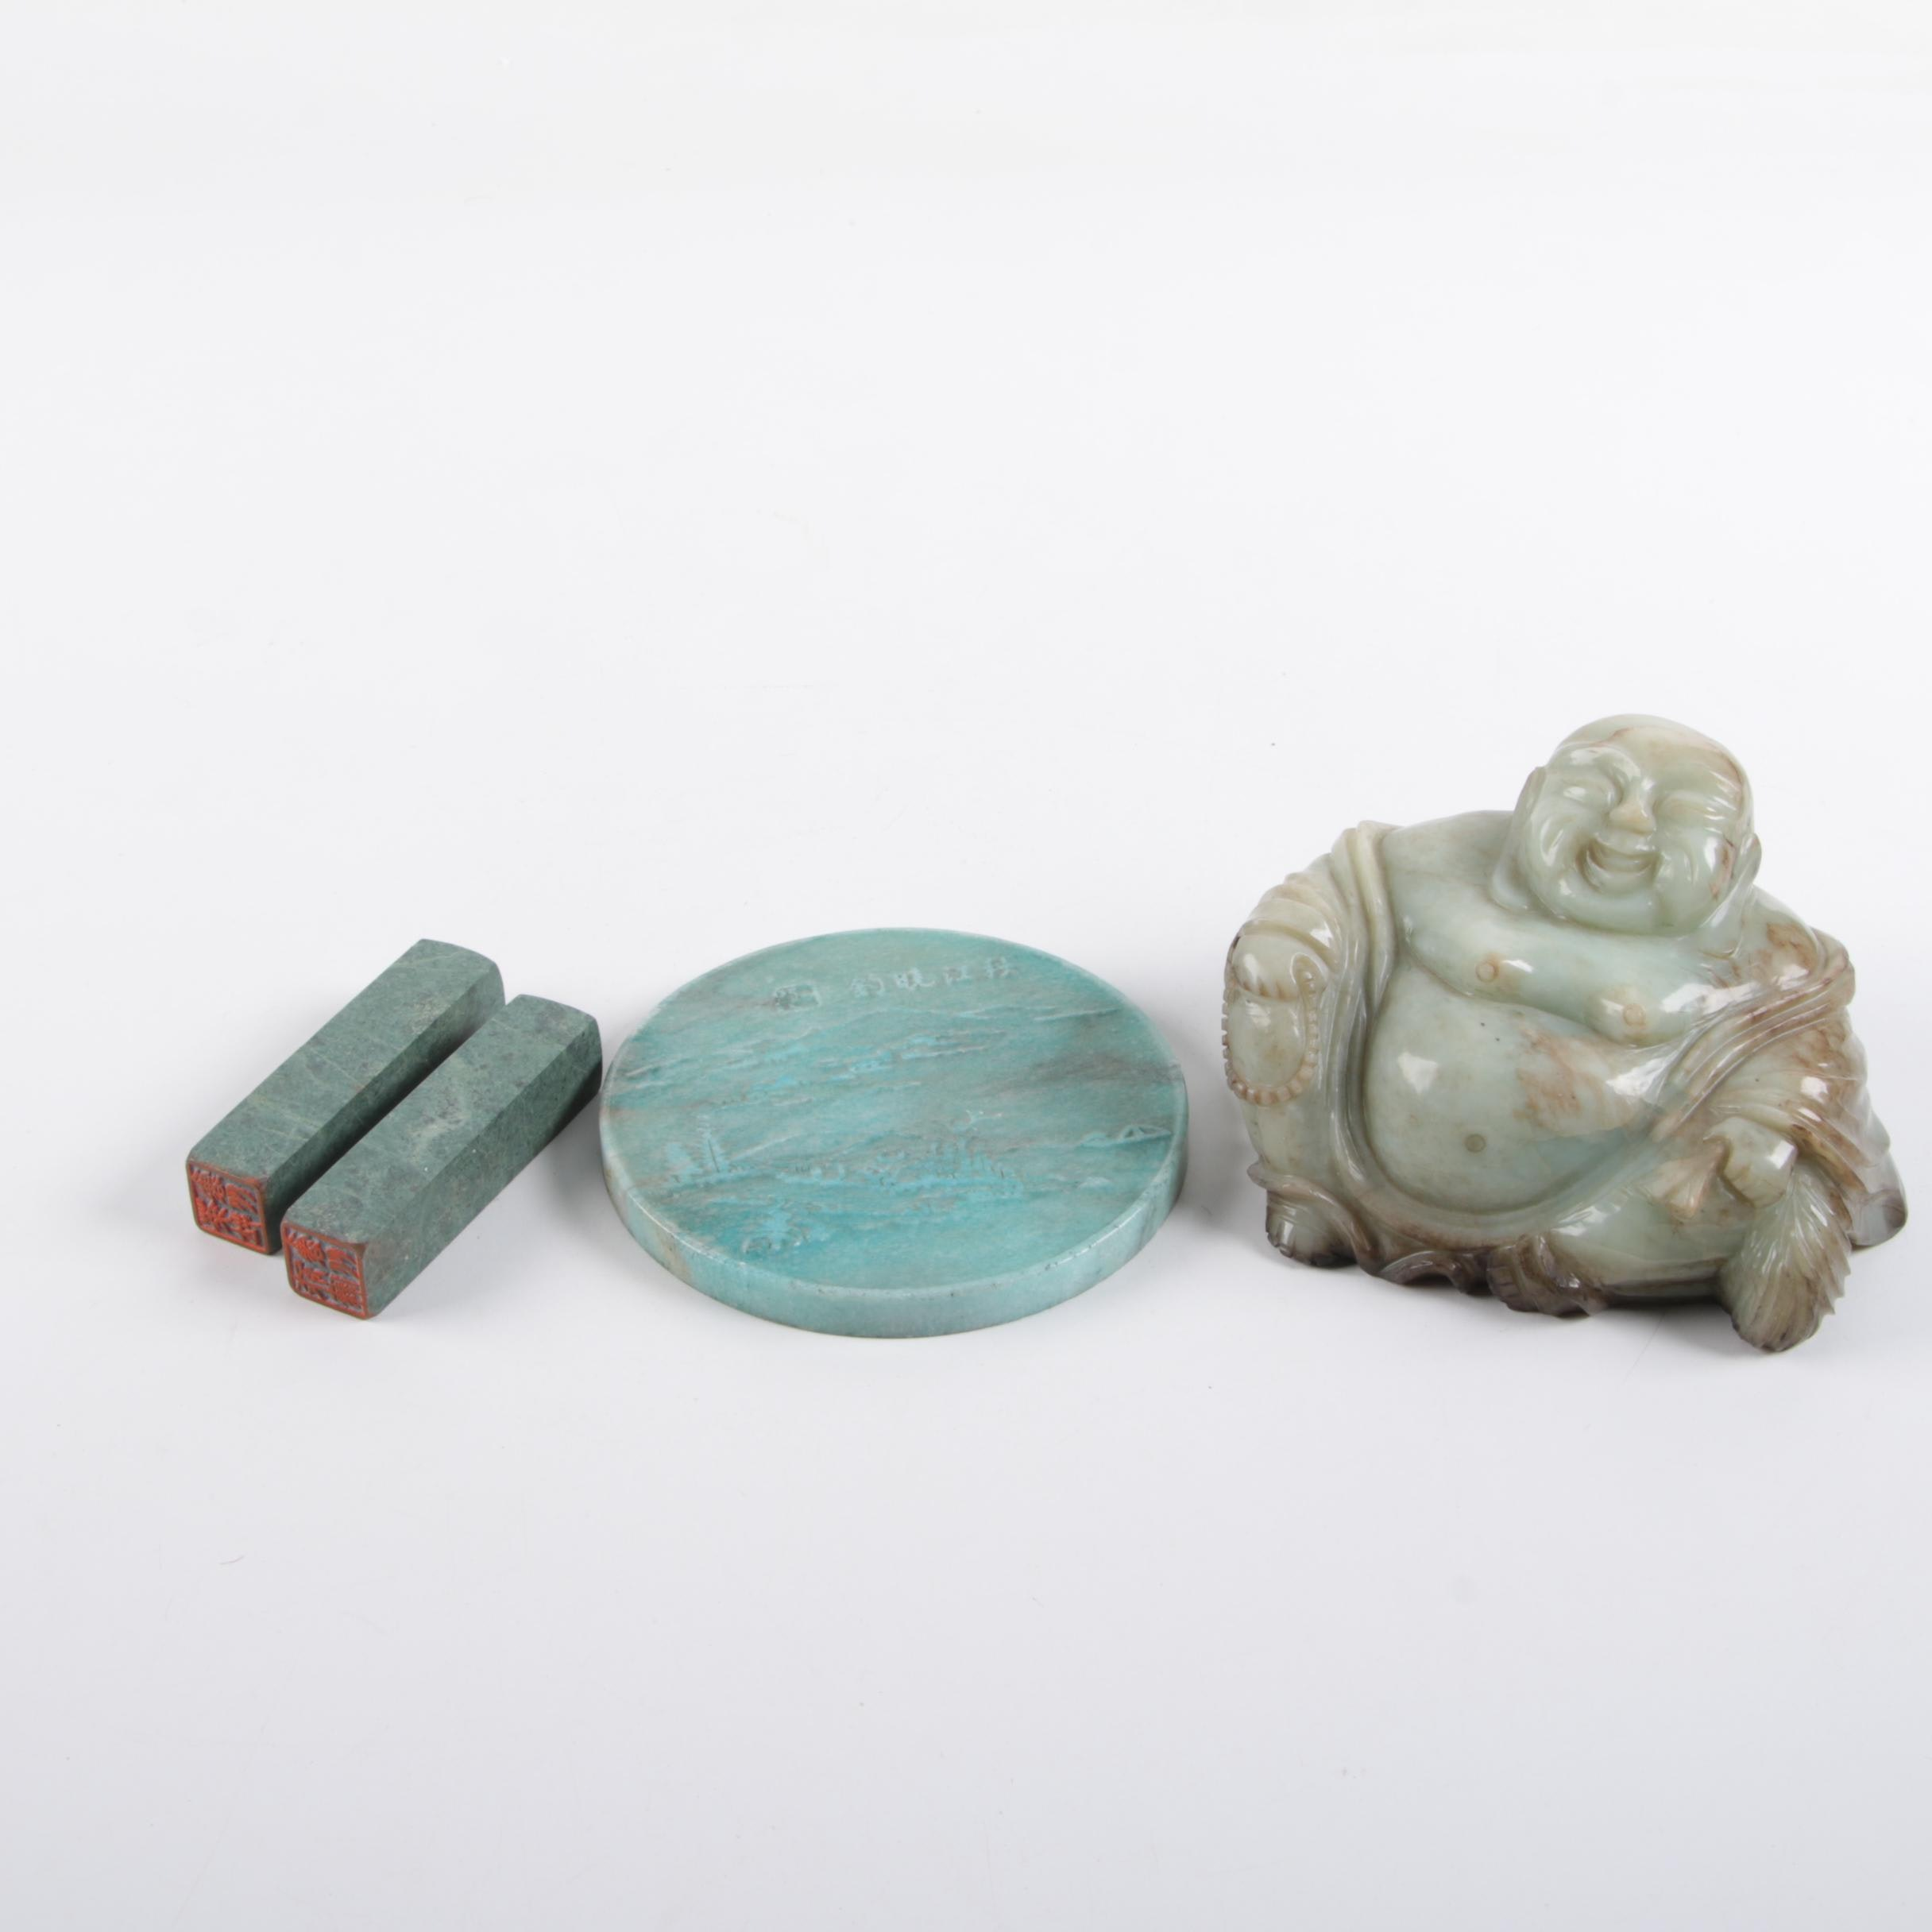 Chinese Serpentine Budai with Coaster and Marble Stamps